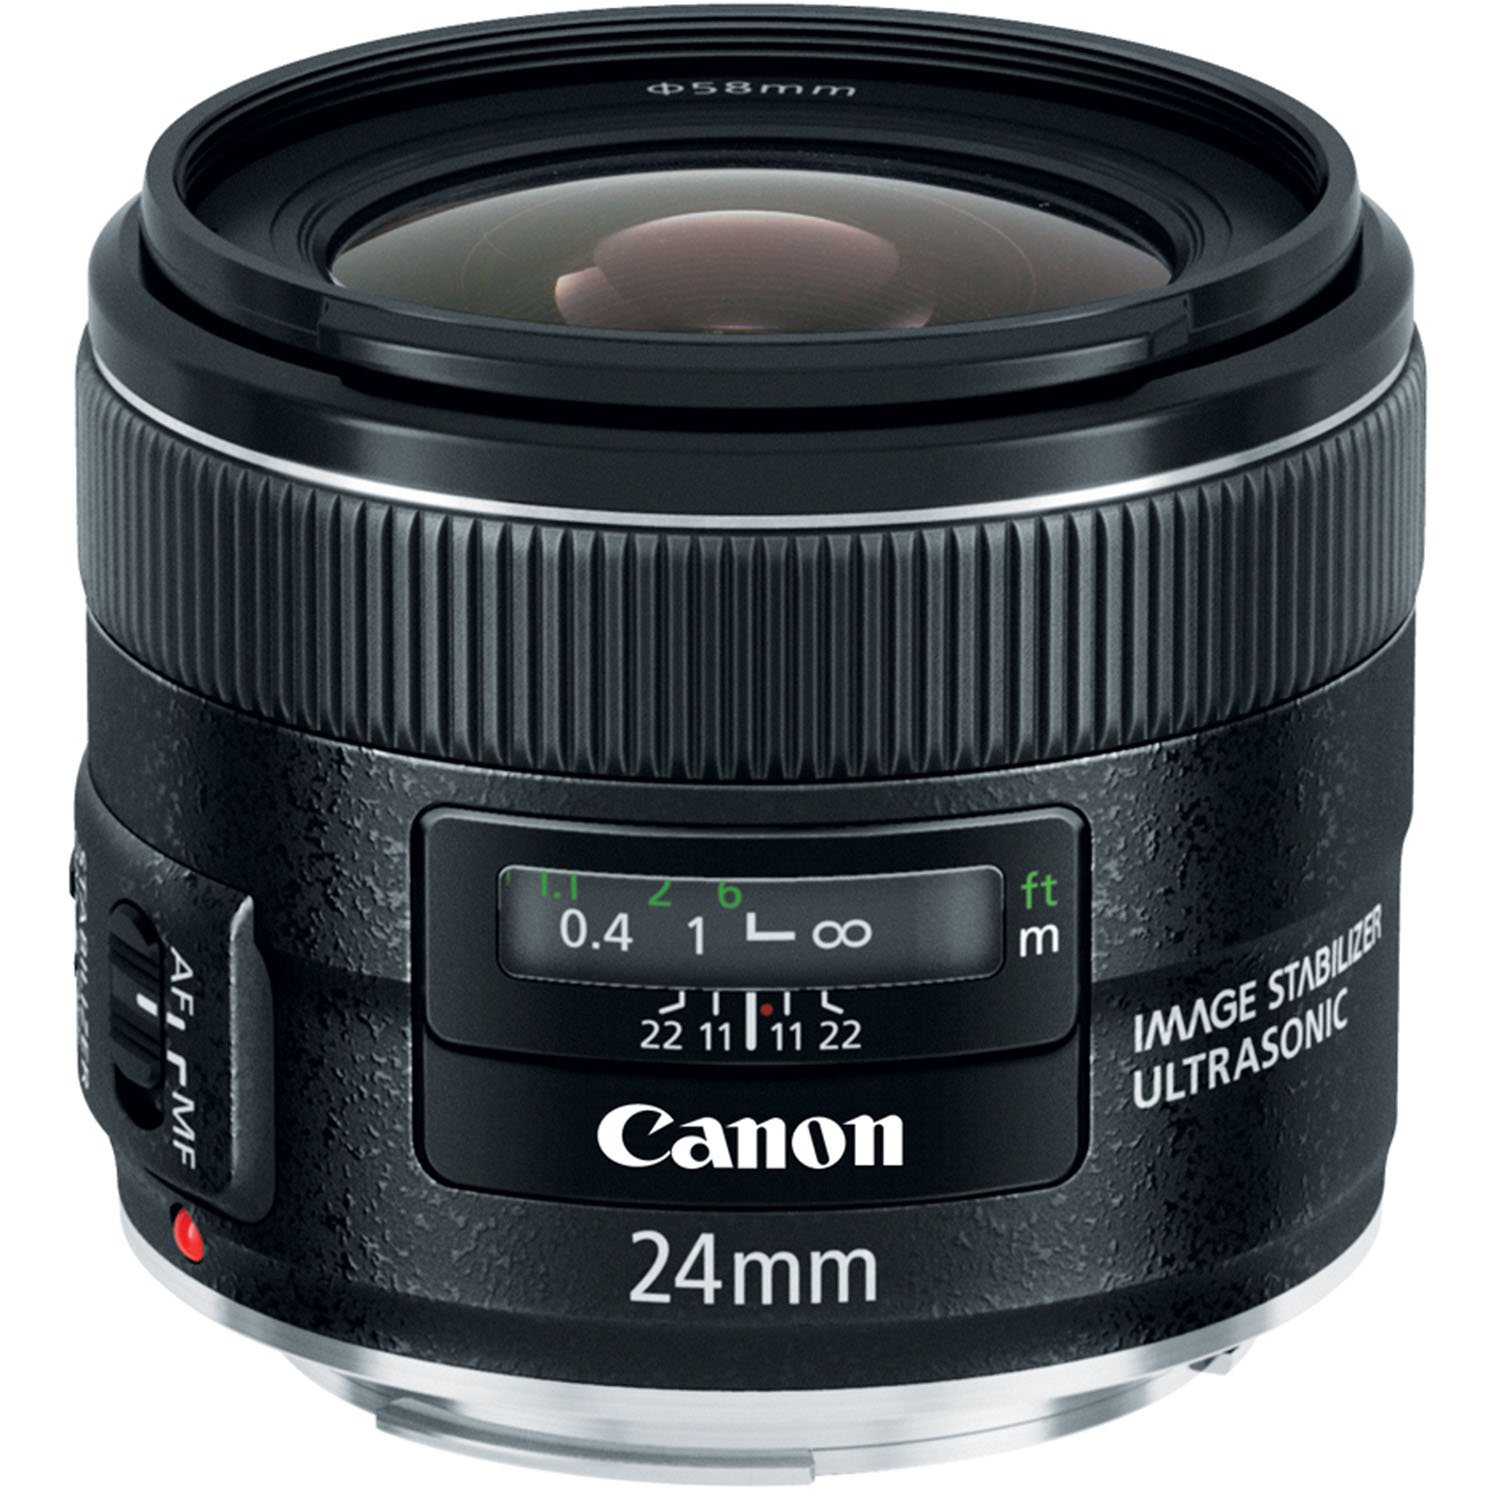 amazon com canon ef 24mm f 2 8 is usm wide angle lens fixed rh amazon com Canon Zoom Lens super 500mm/1000mm f/8 manual telephoto lens for canon eos